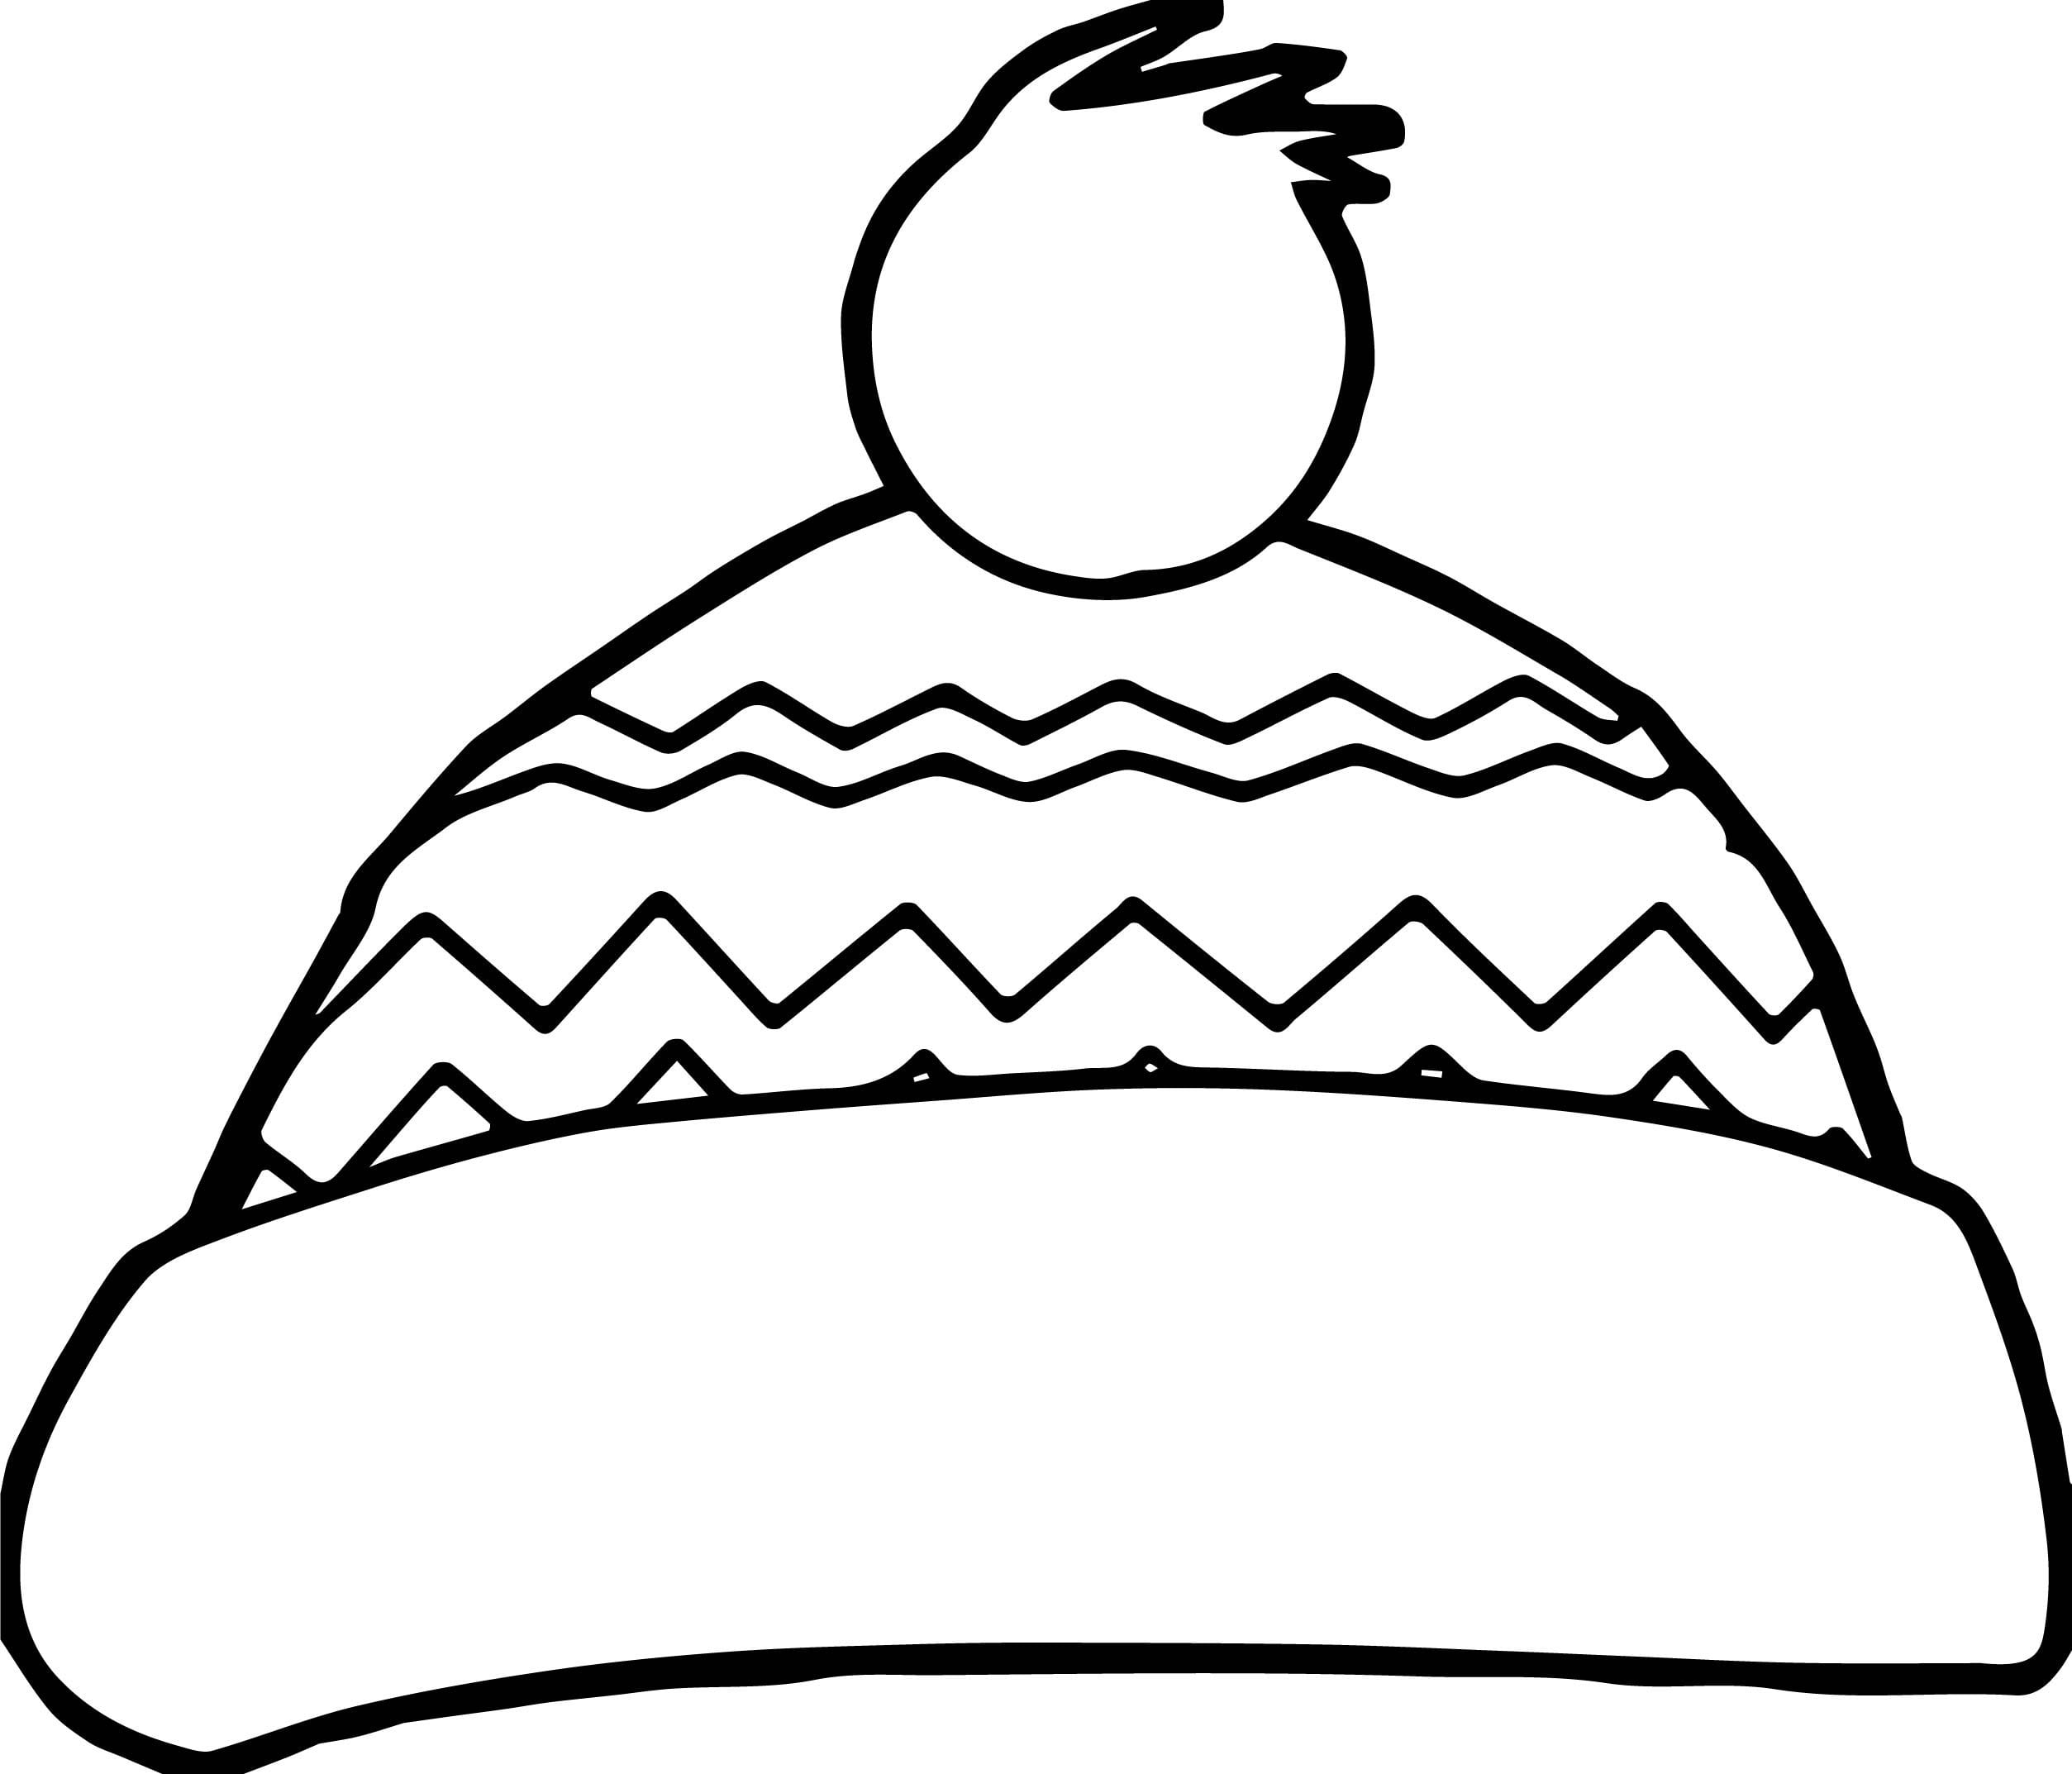 Coloring Page Of A Hat